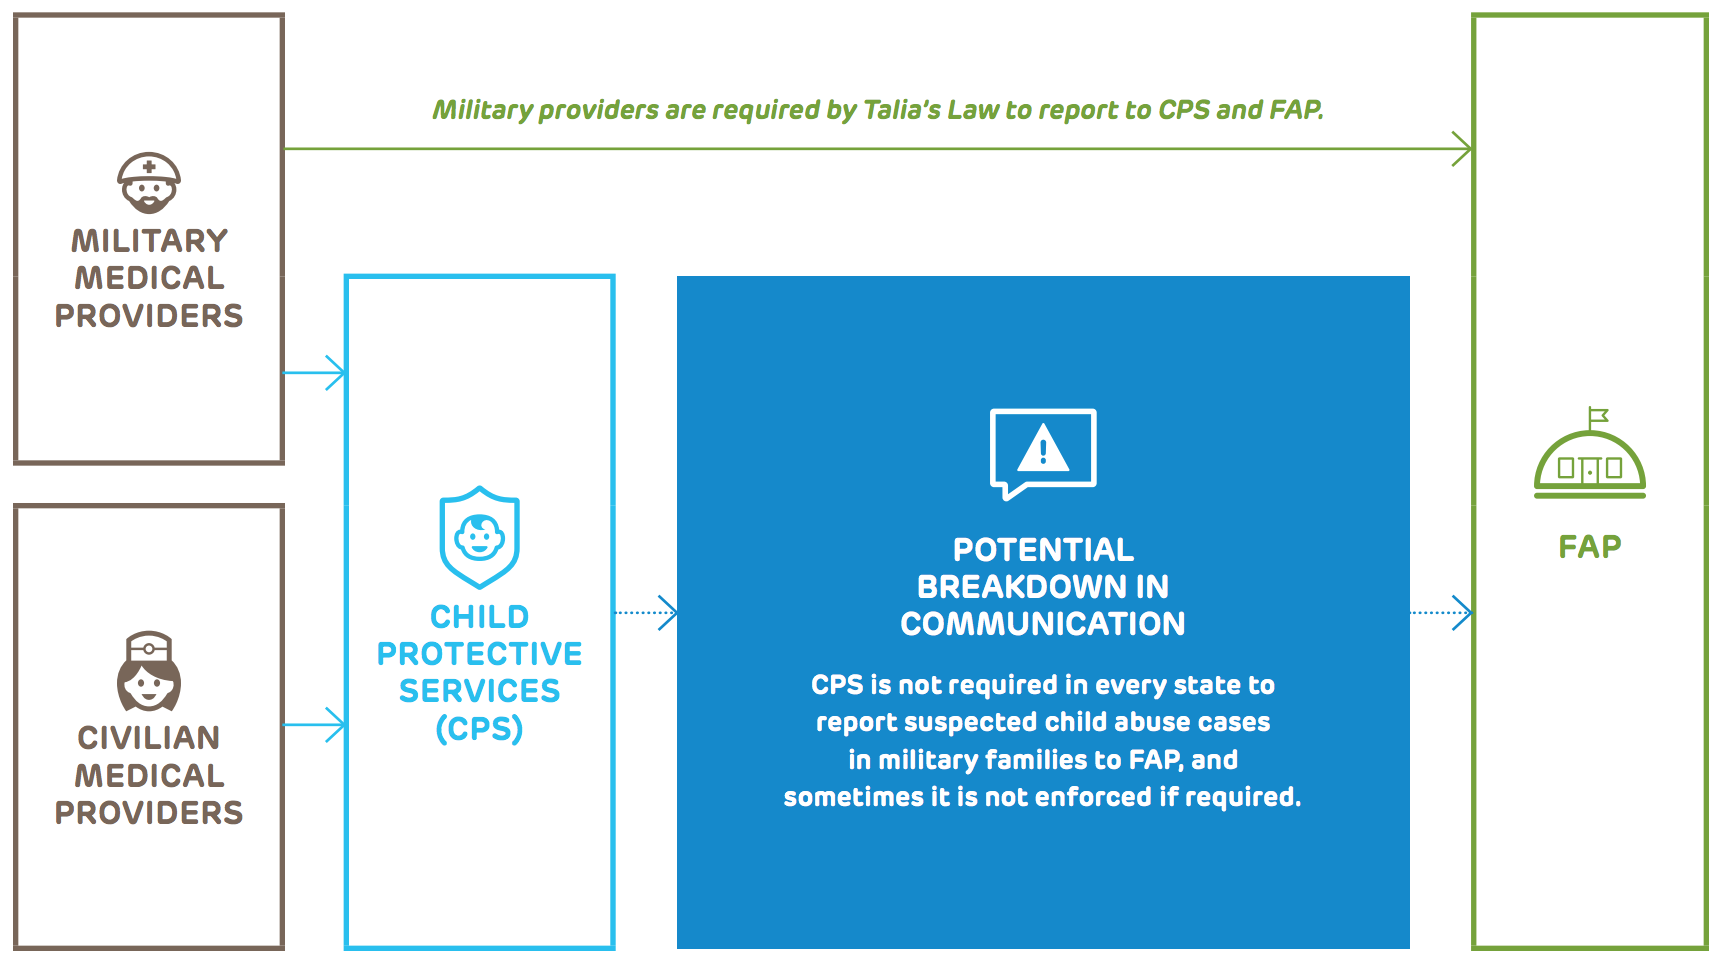 Lack of Communication May Lead to Under-Reporting of Child Abuse and Neglect for Military Families